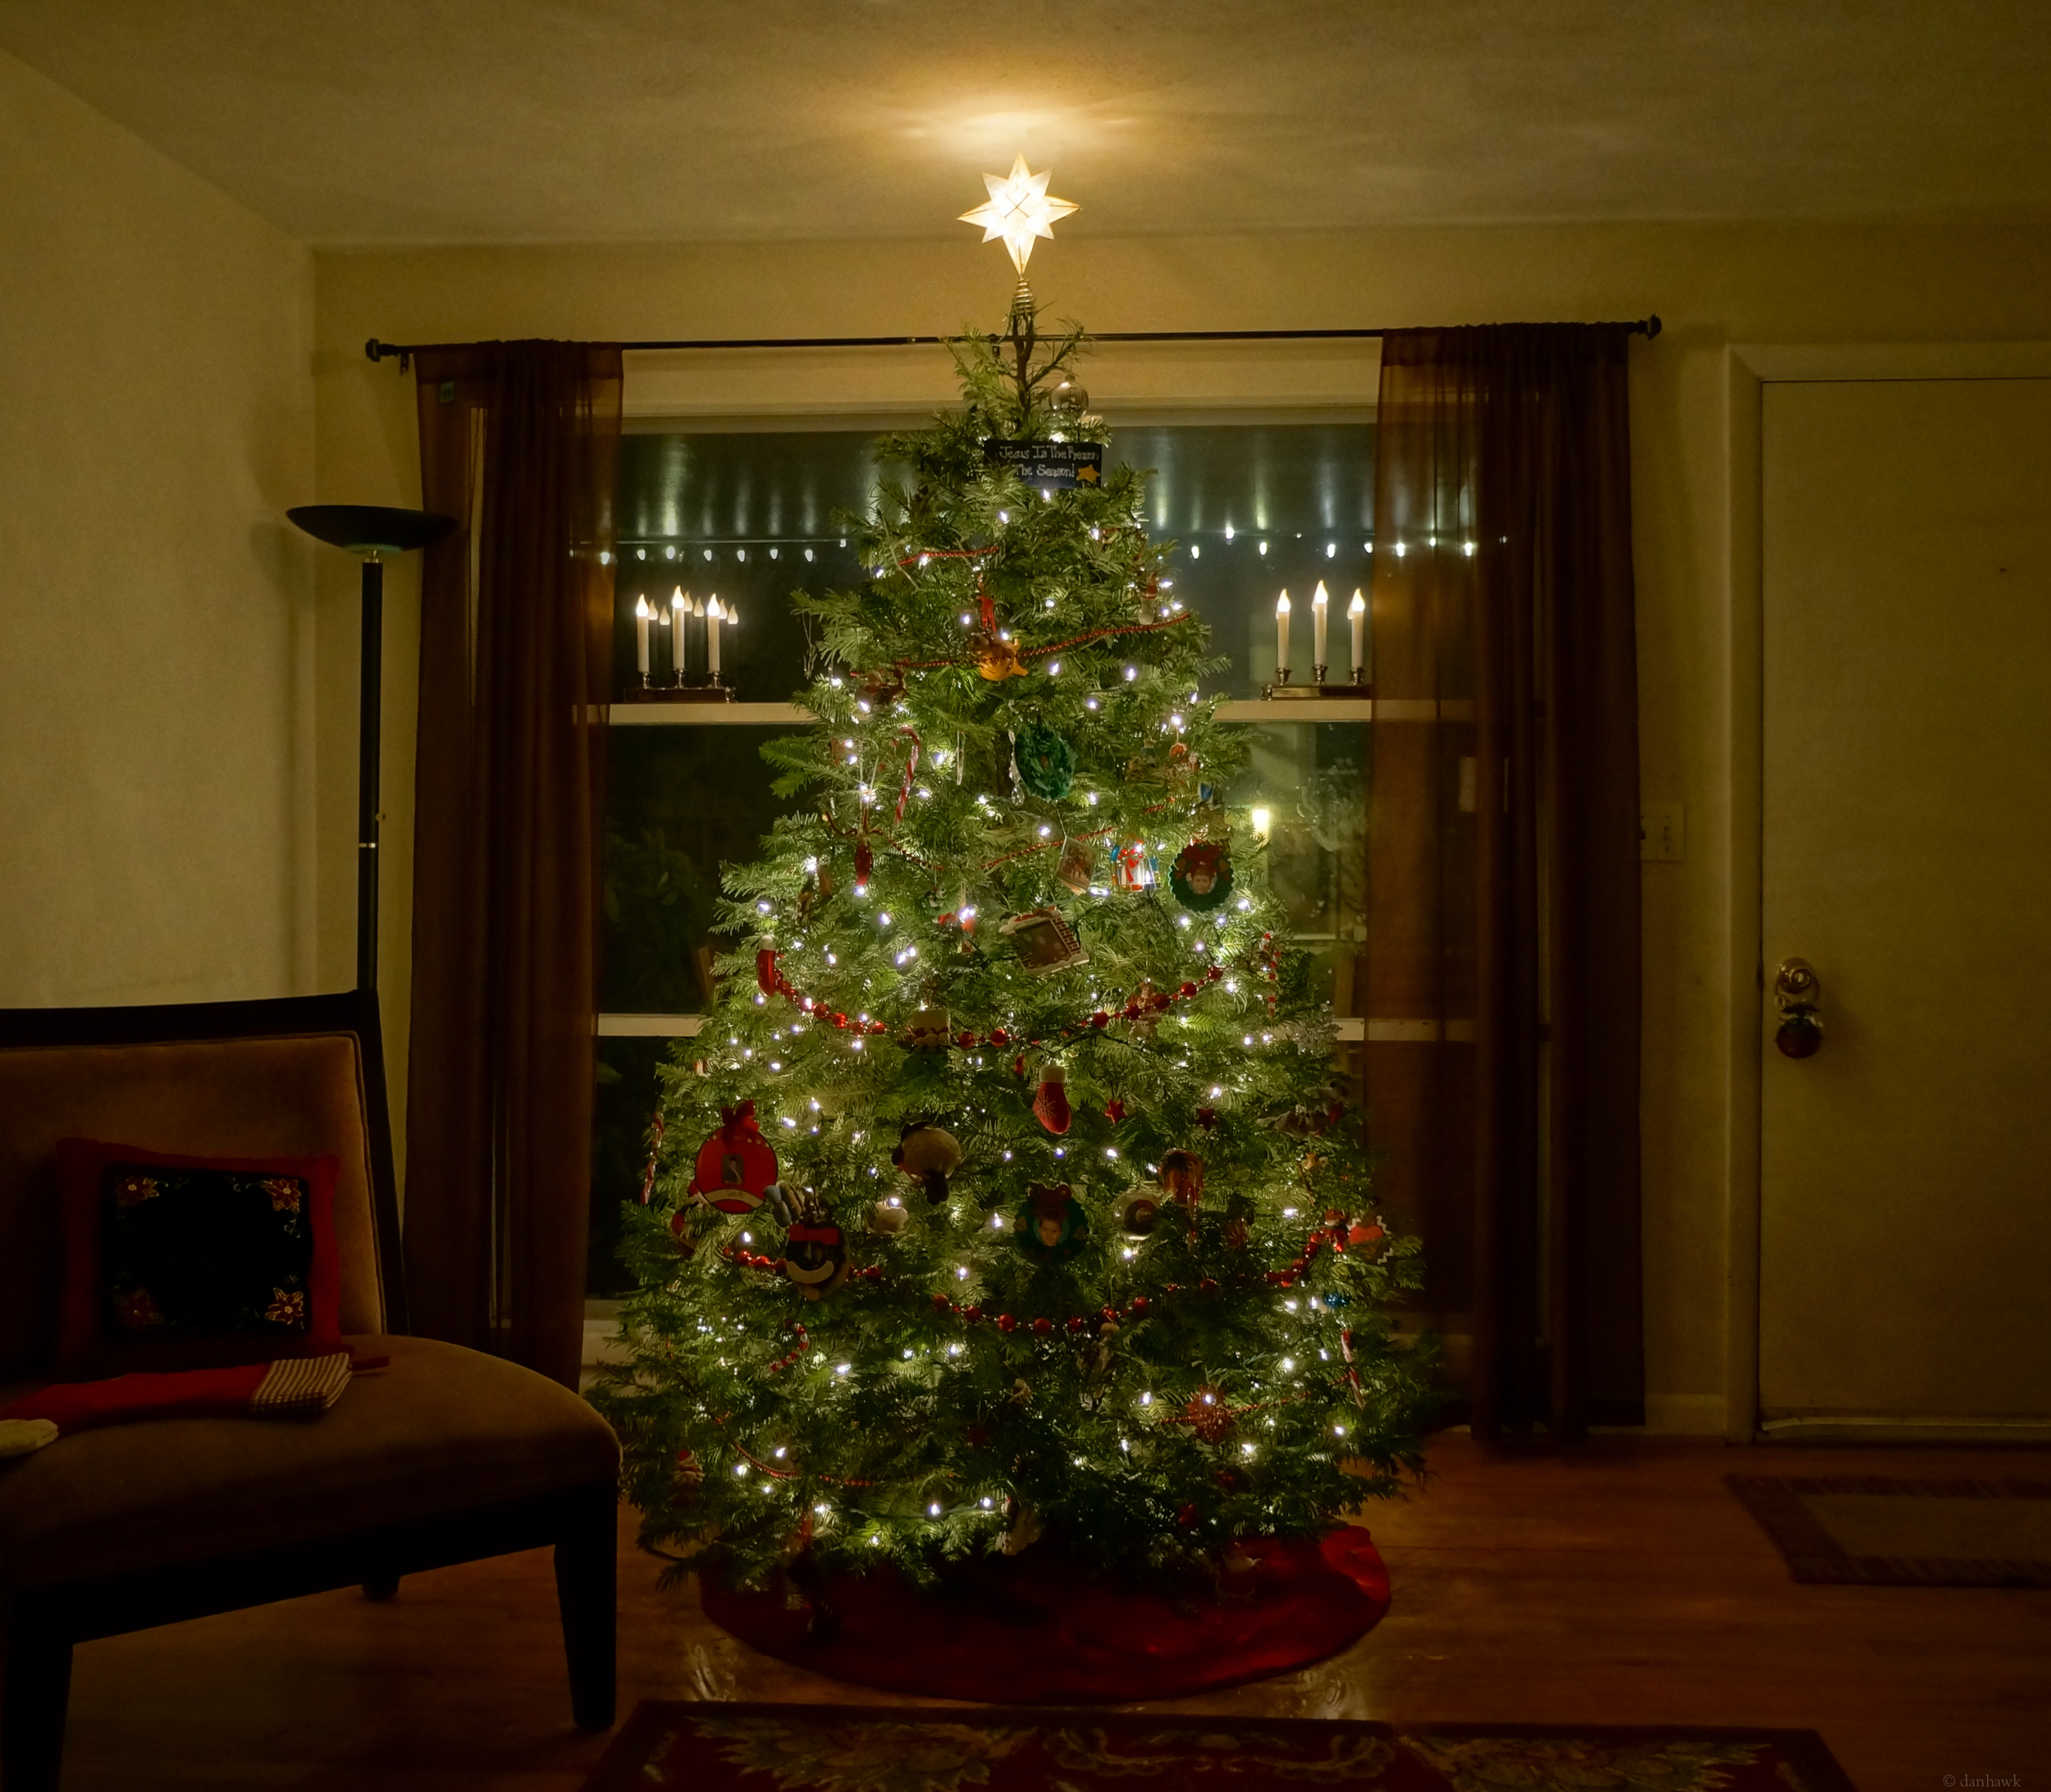 This Year's Tree | 365 Project | Dec 2nd, 2012